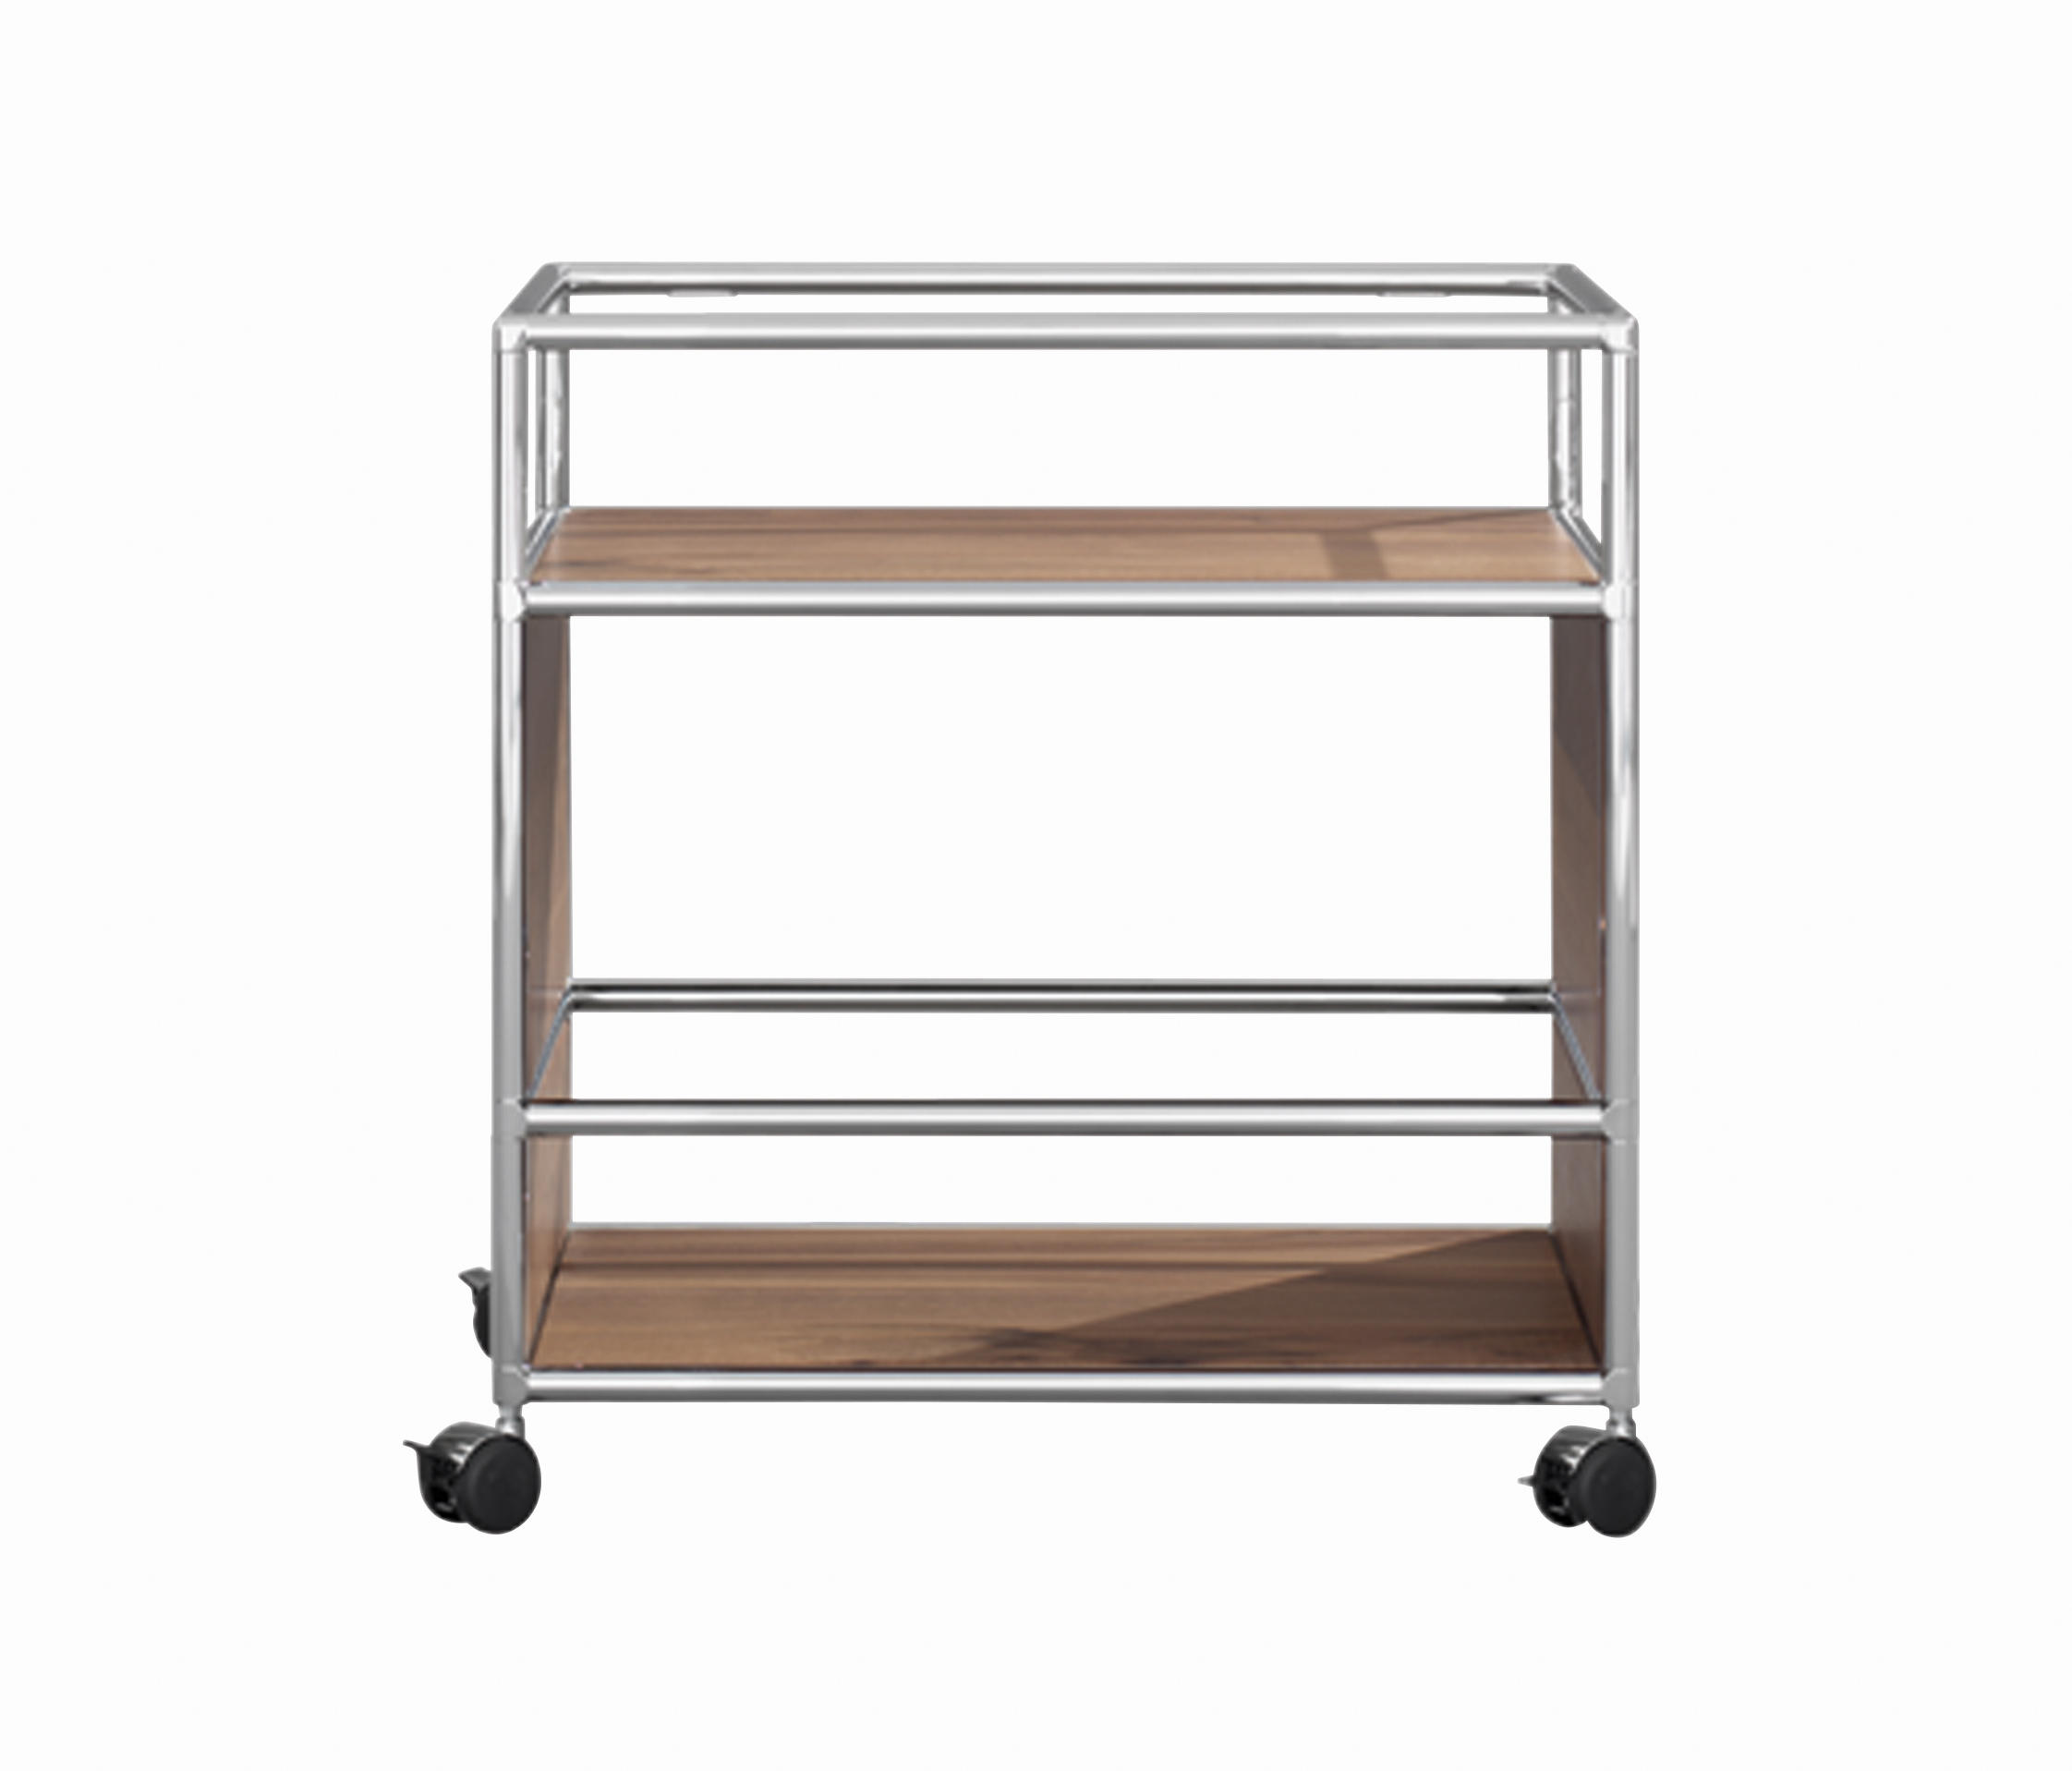 serving trolley tea trolleys bar trolleys from dauphin home architonic. Black Bedroom Furniture Sets. Home Design Ideas